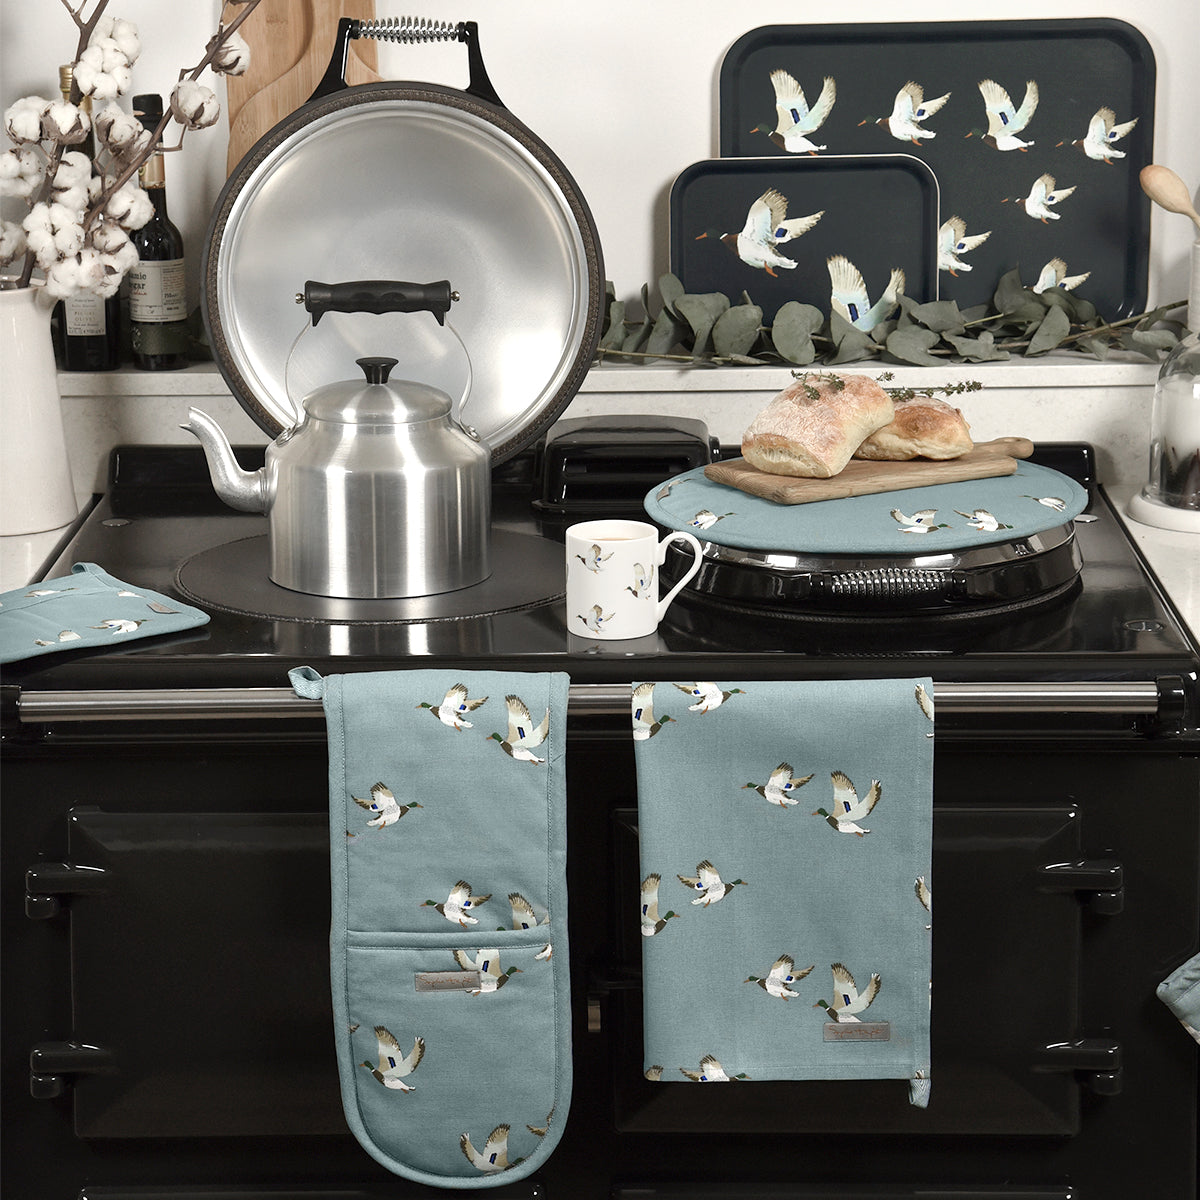 Ducks Circular Hob Cover by Sophie Allport